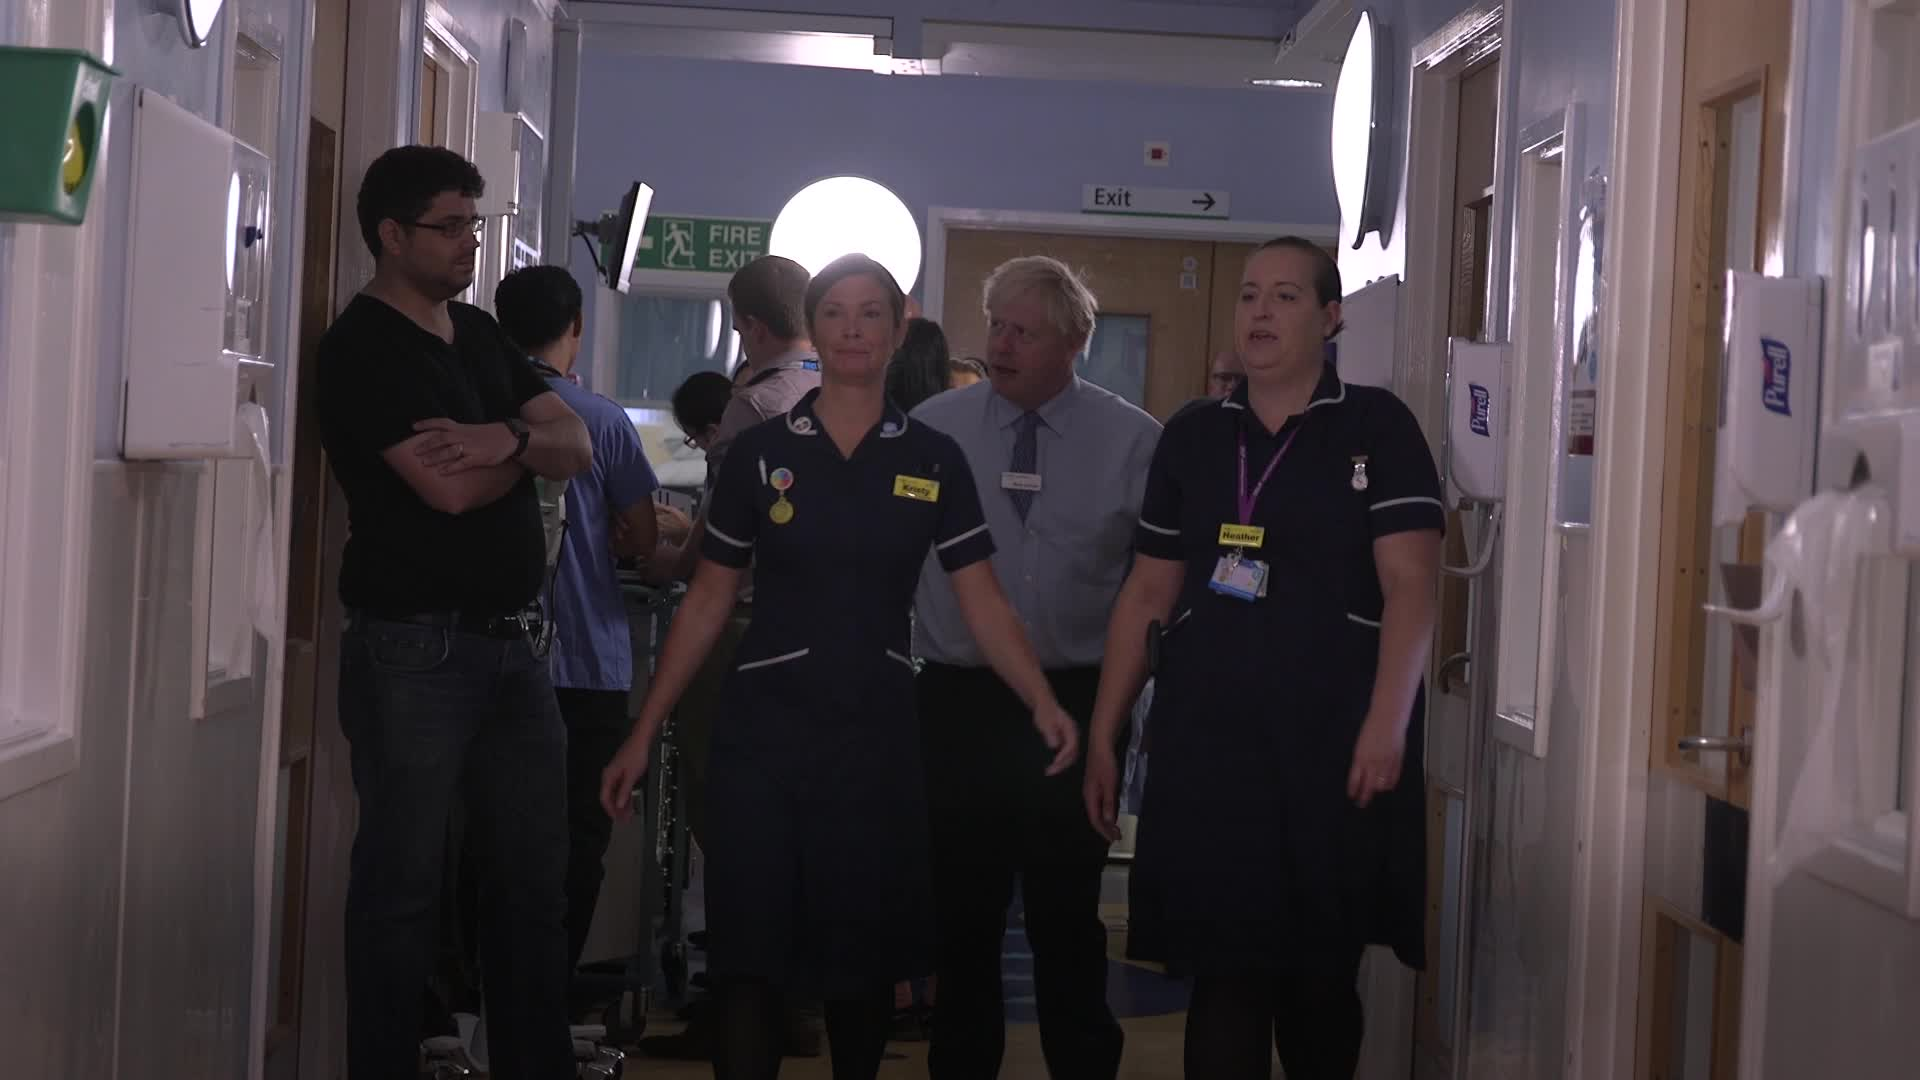 Boris Johnson Confronted By Angry Parent In Hospital For 'Destroying' NHS